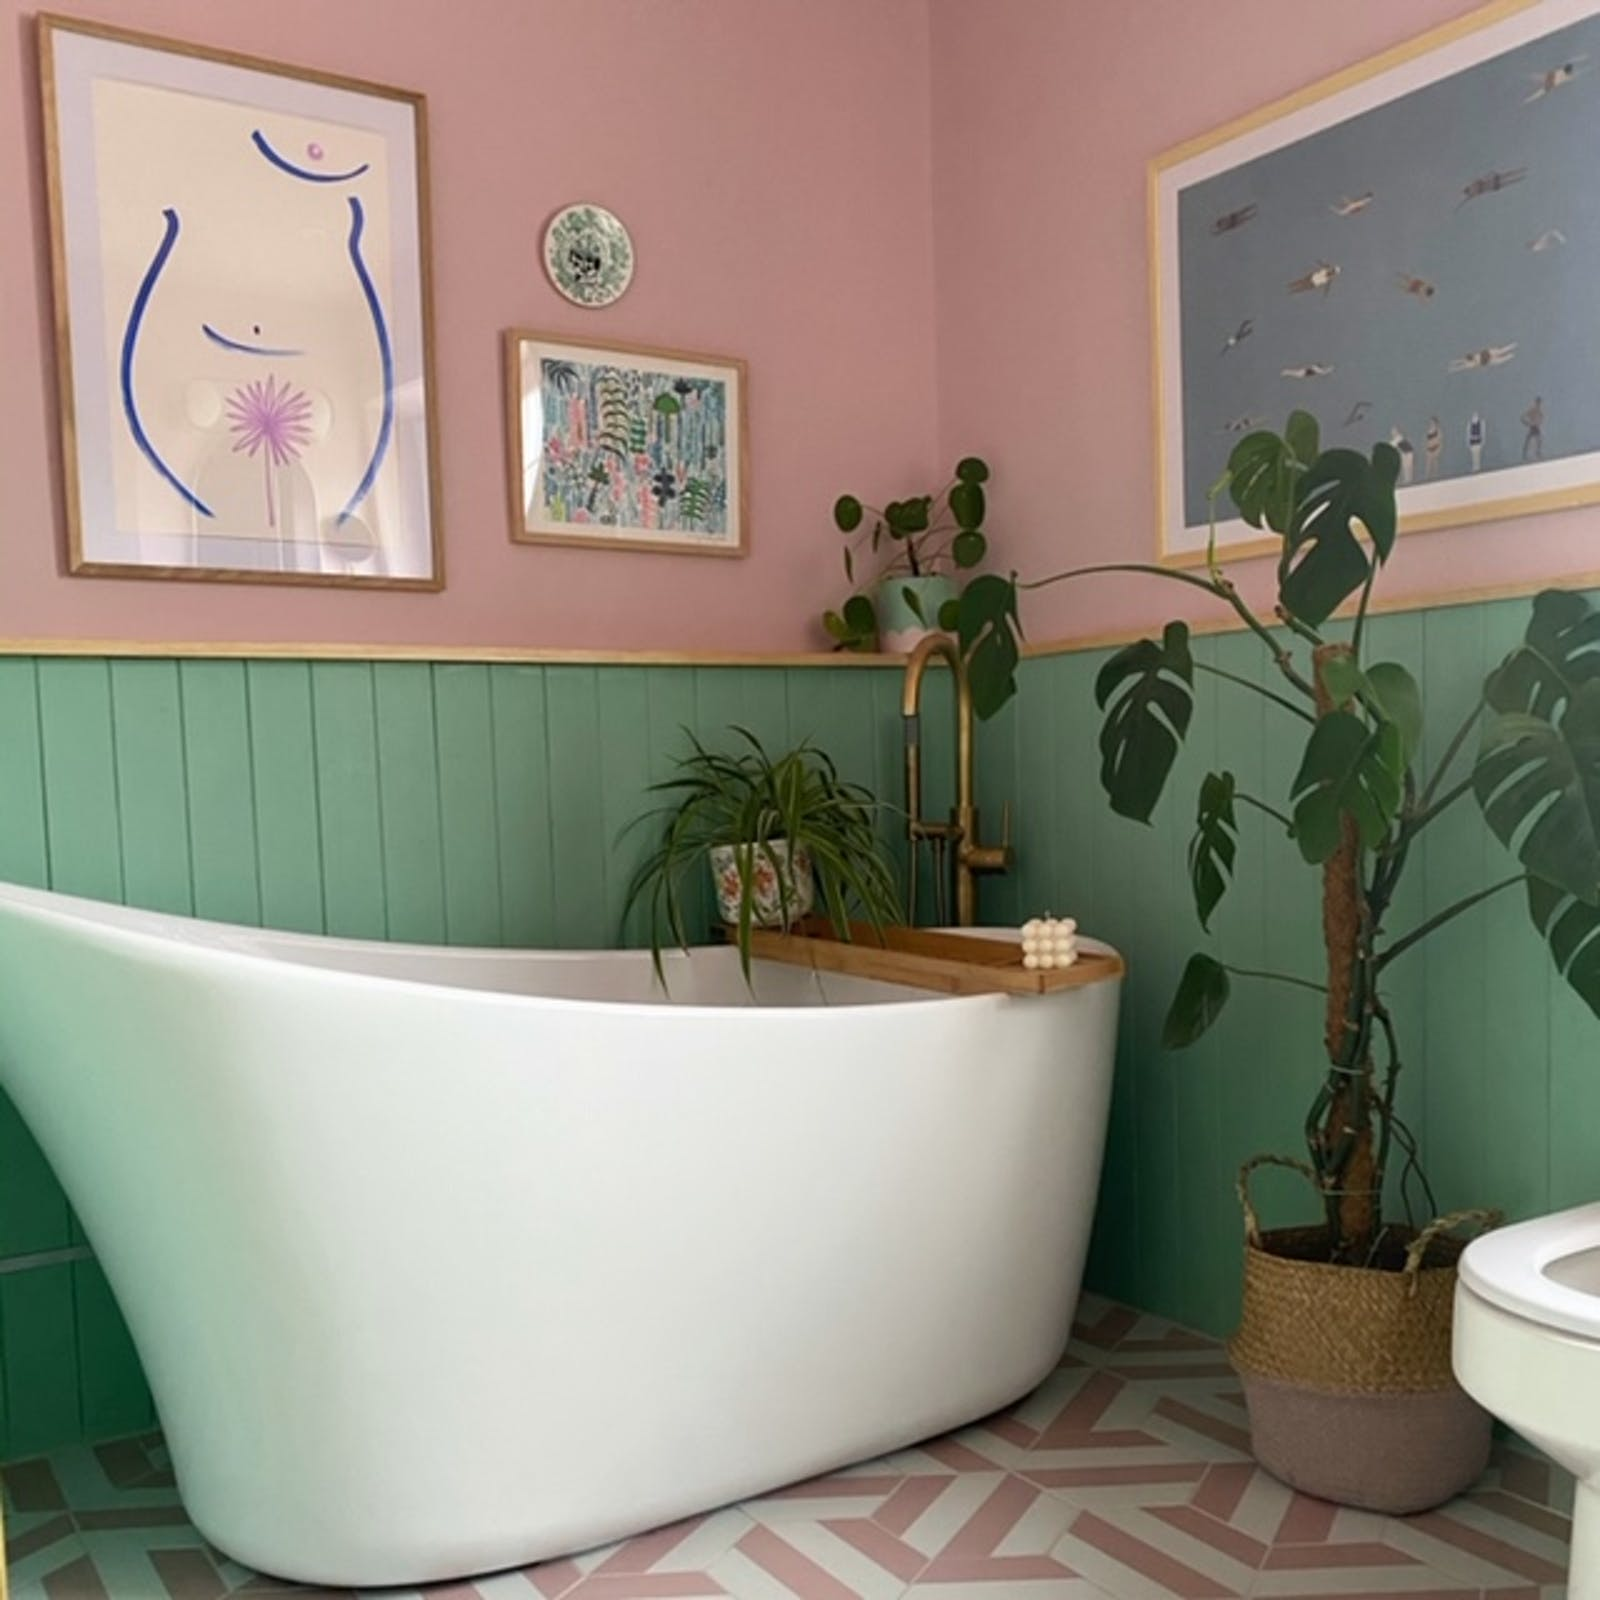 Bath tub in bathroom painted in Lick Pink 03 and Lick Green 08 paint